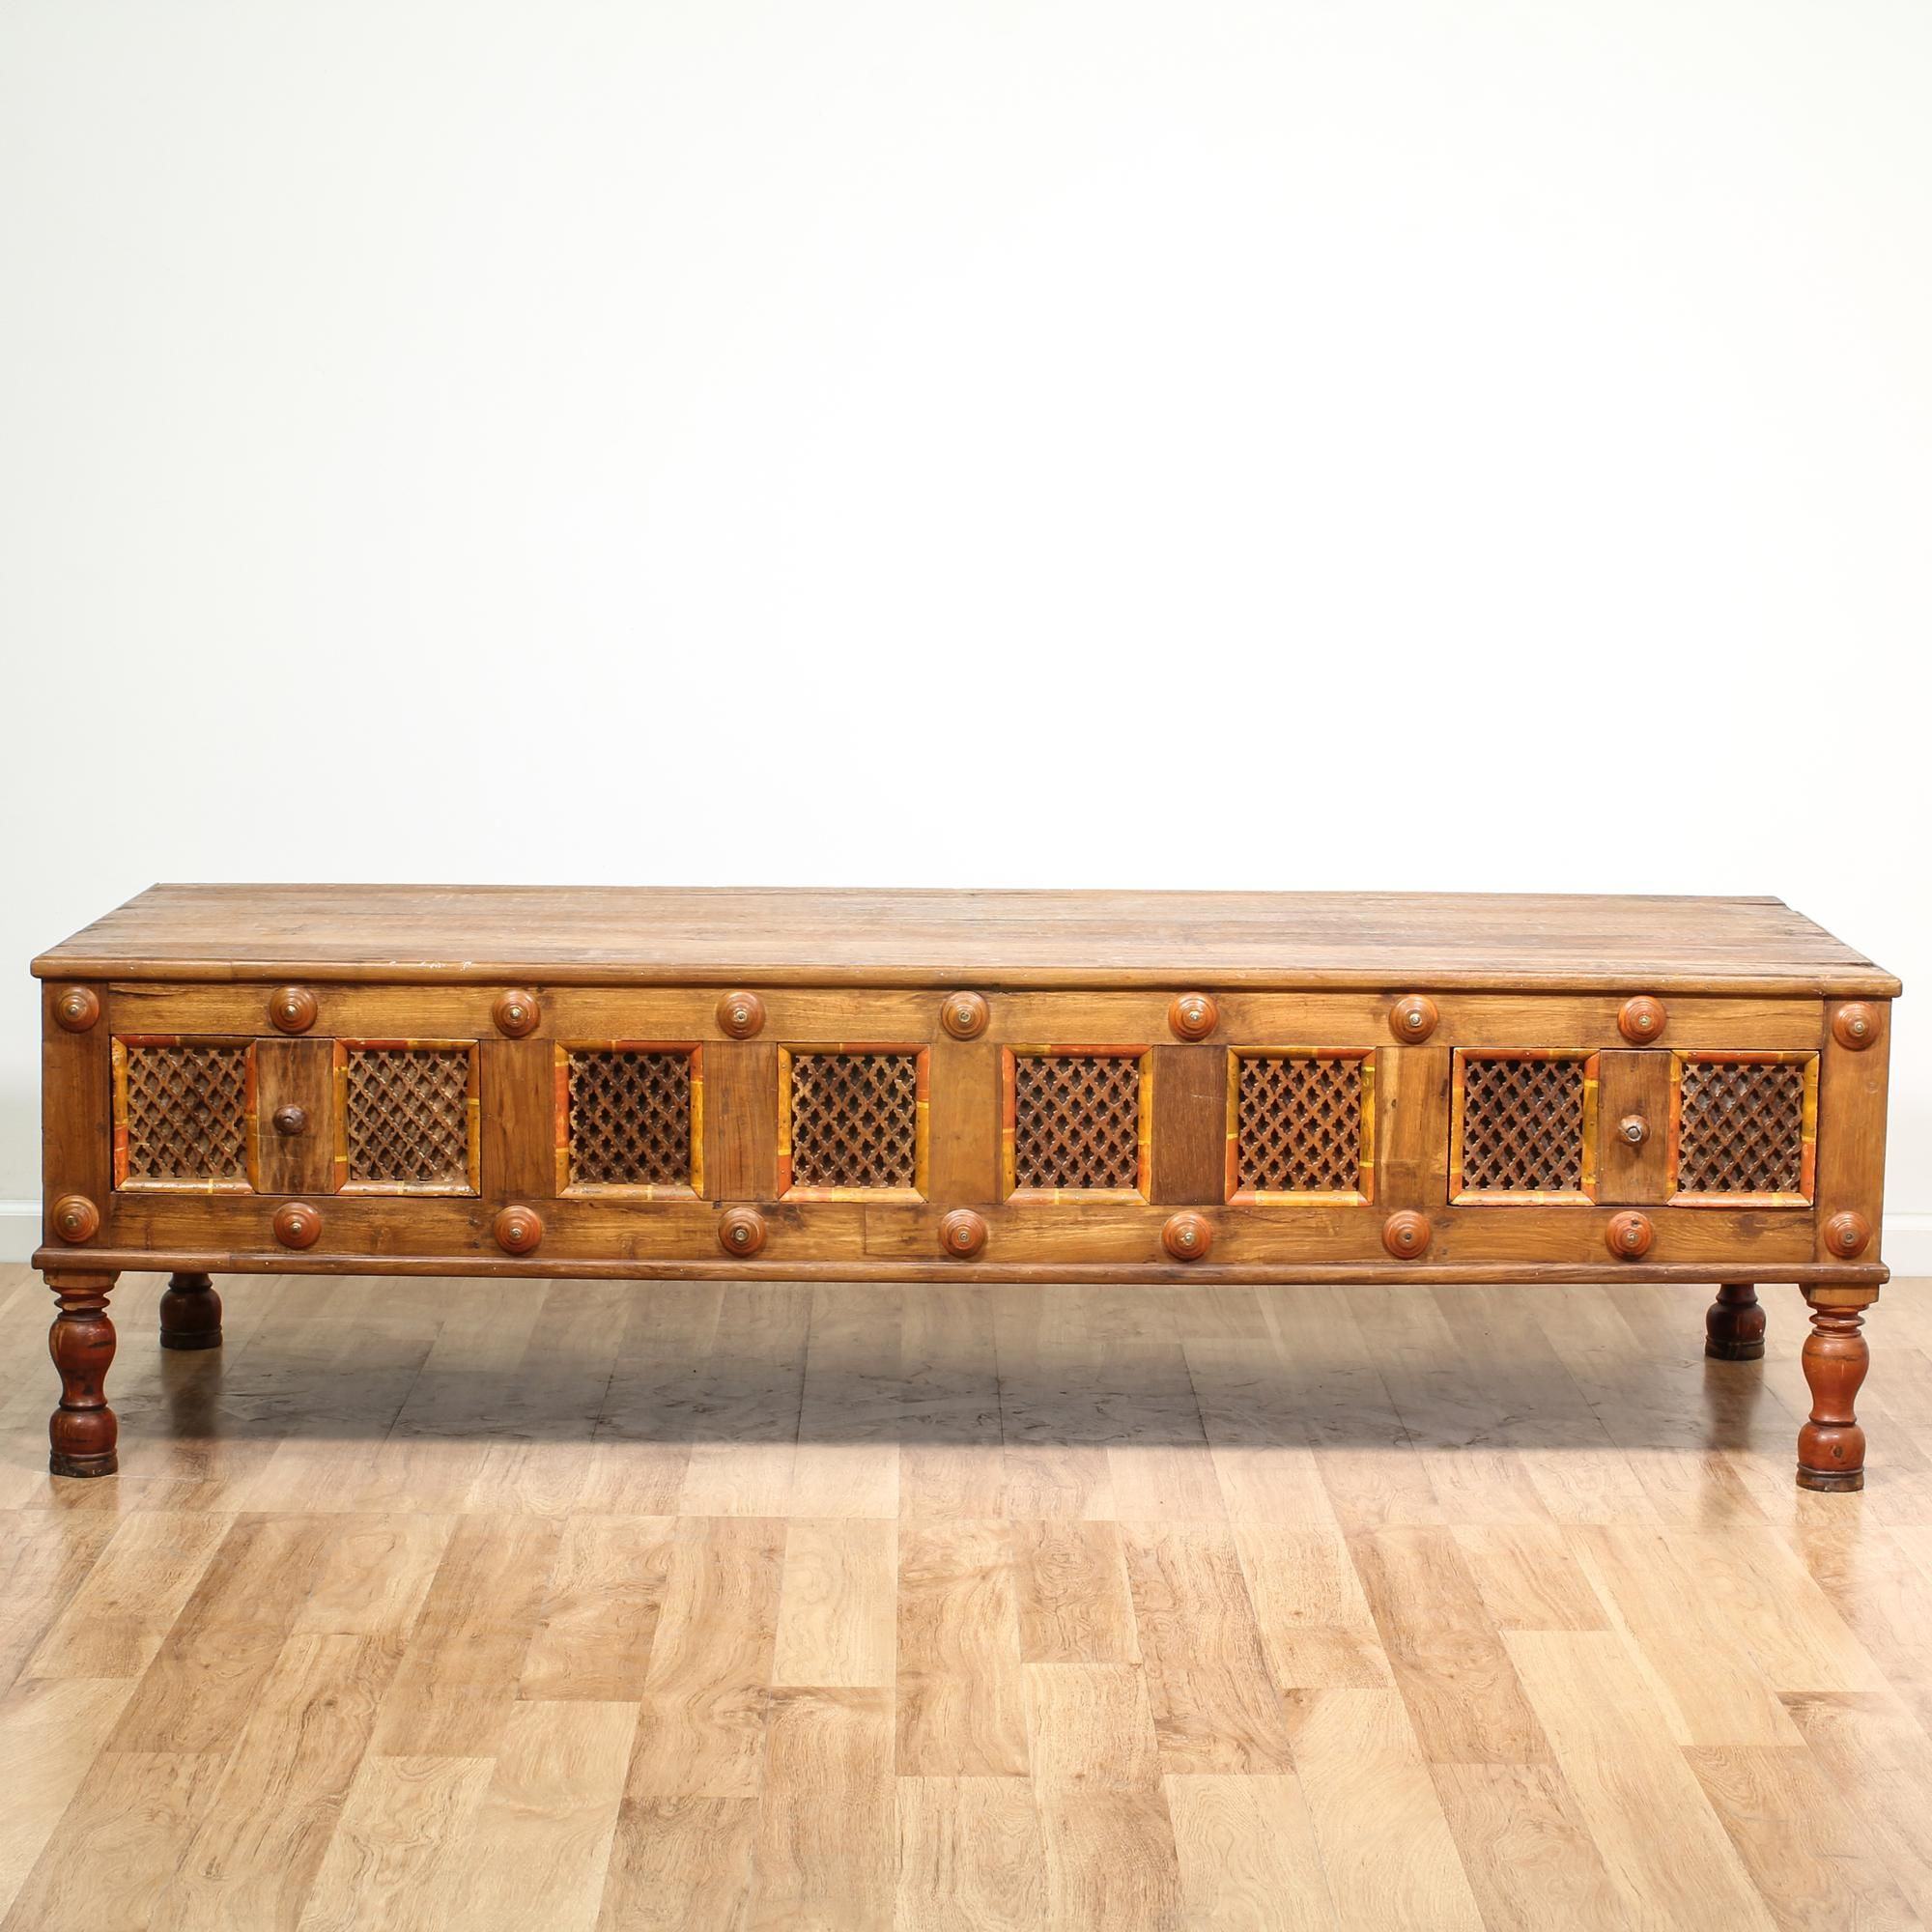 Eastern Asian Style Rustic Coffee Table